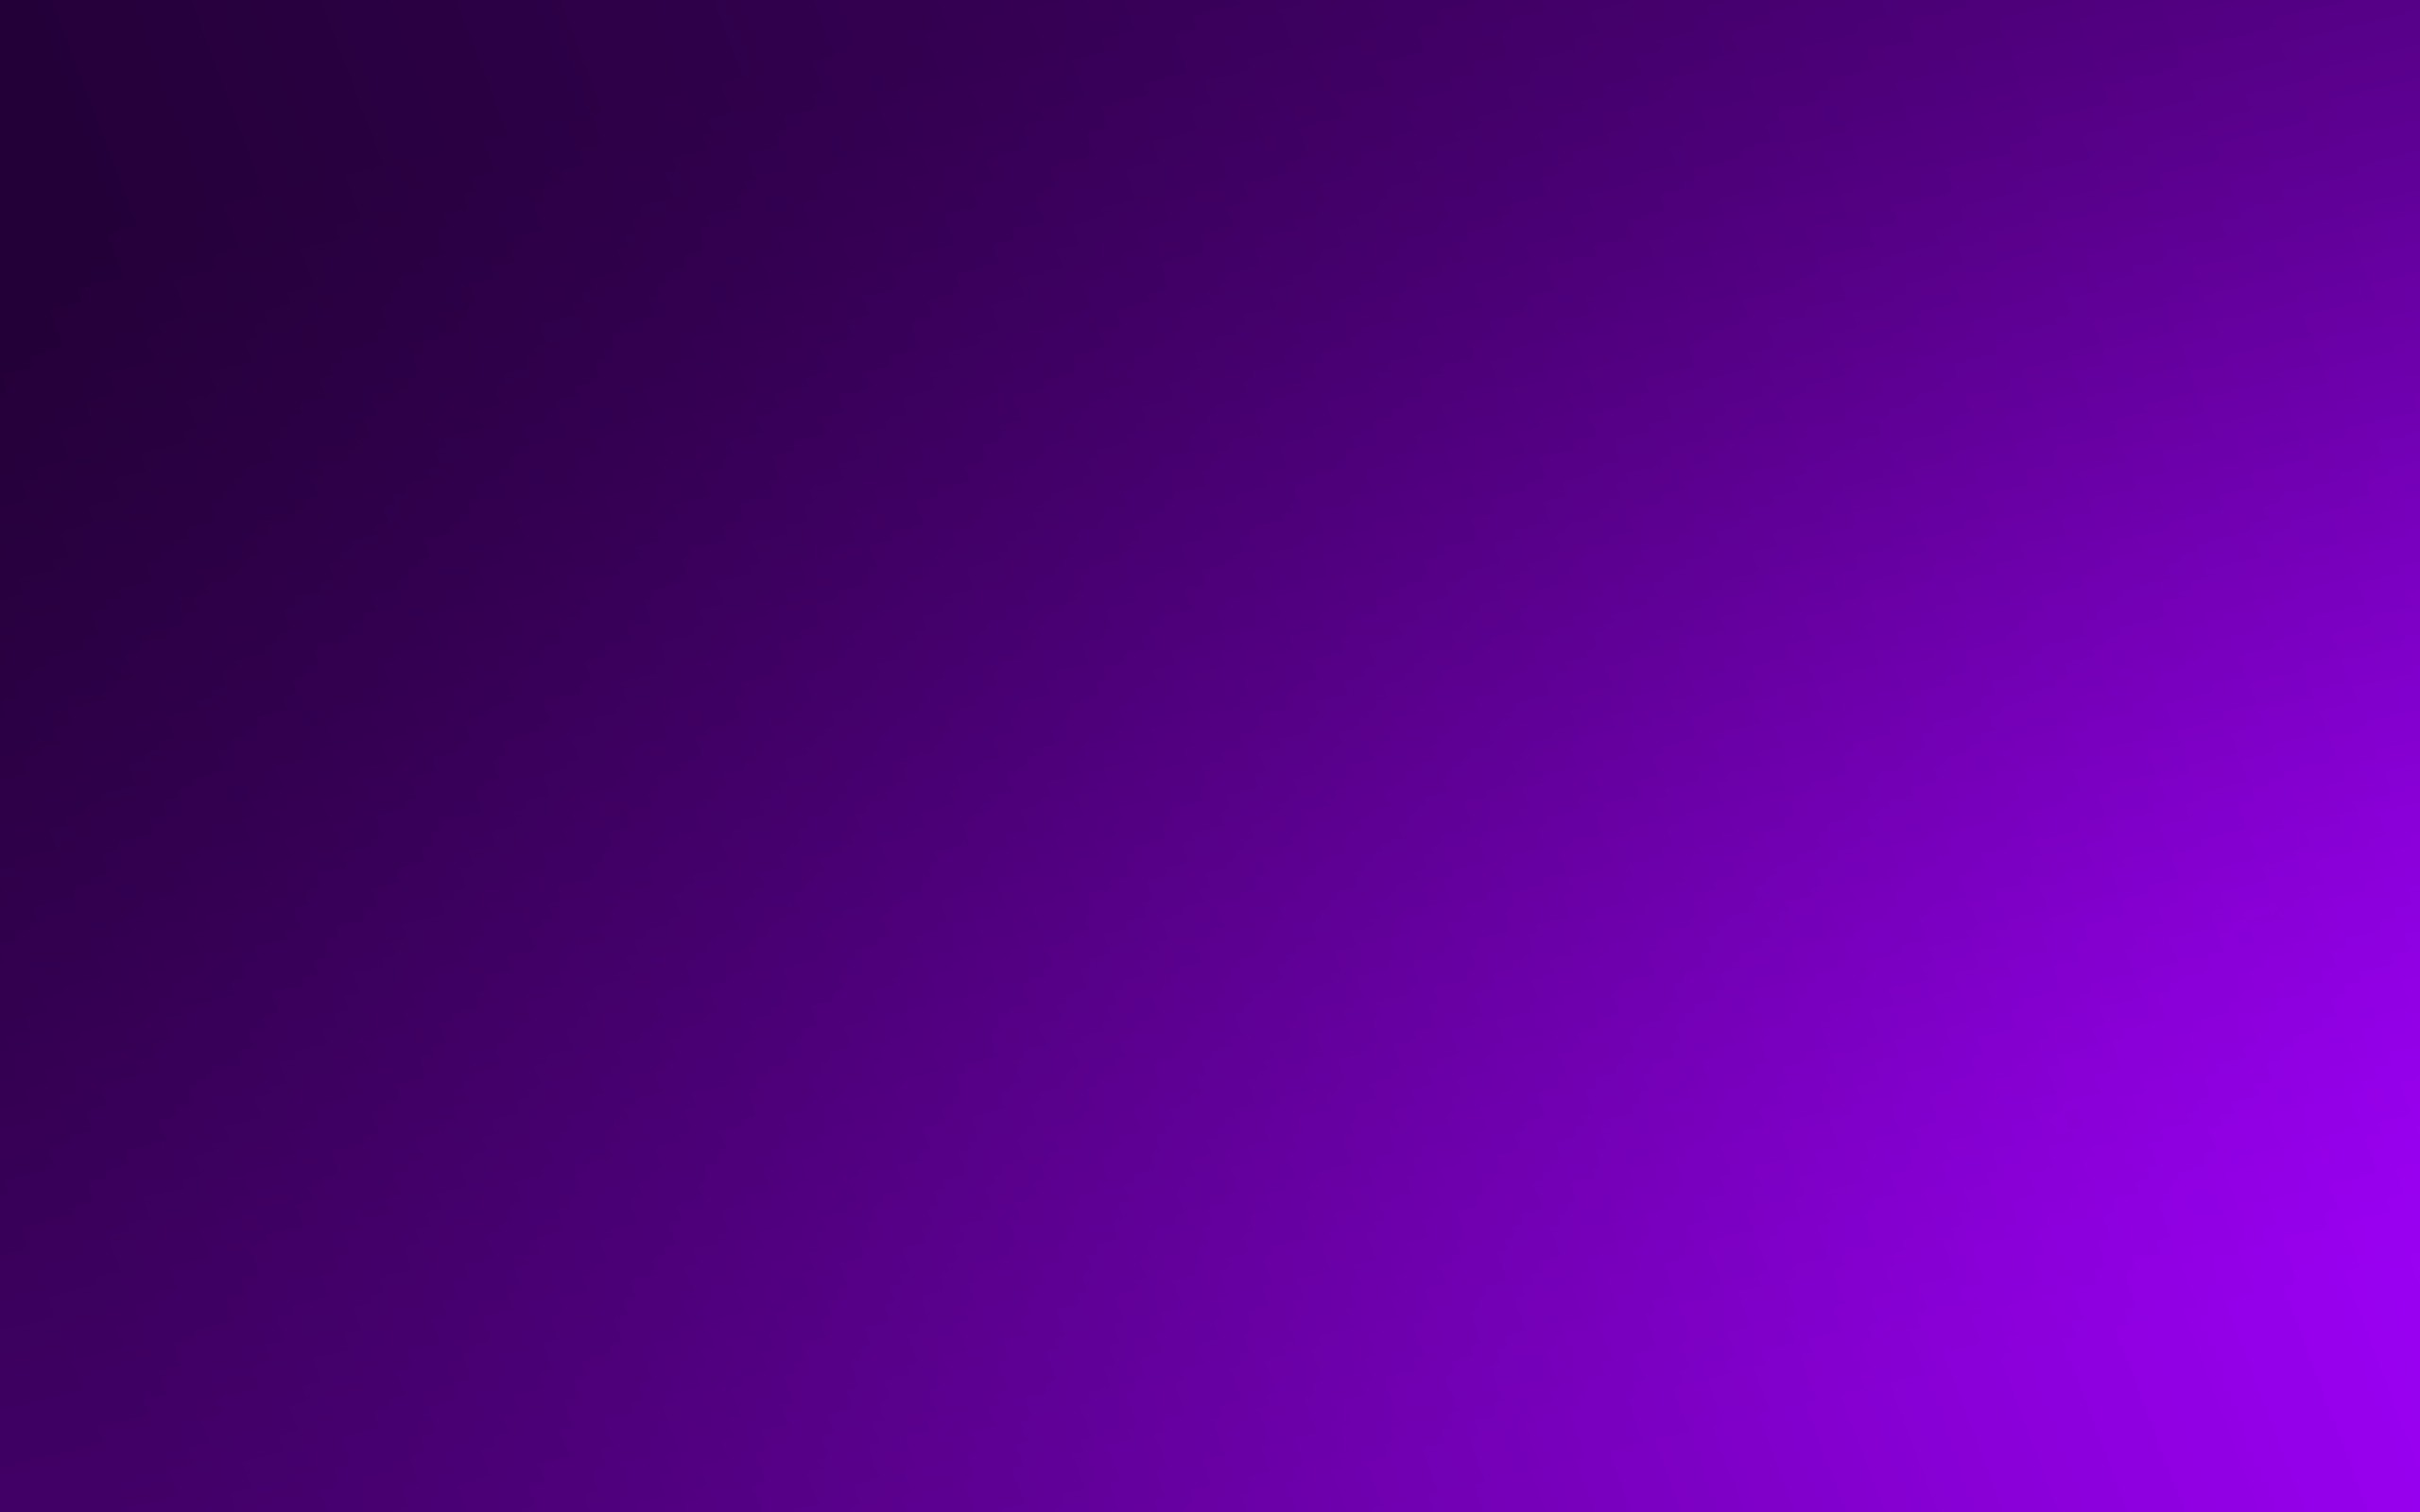 Wallpaper Background, Solid, Purple